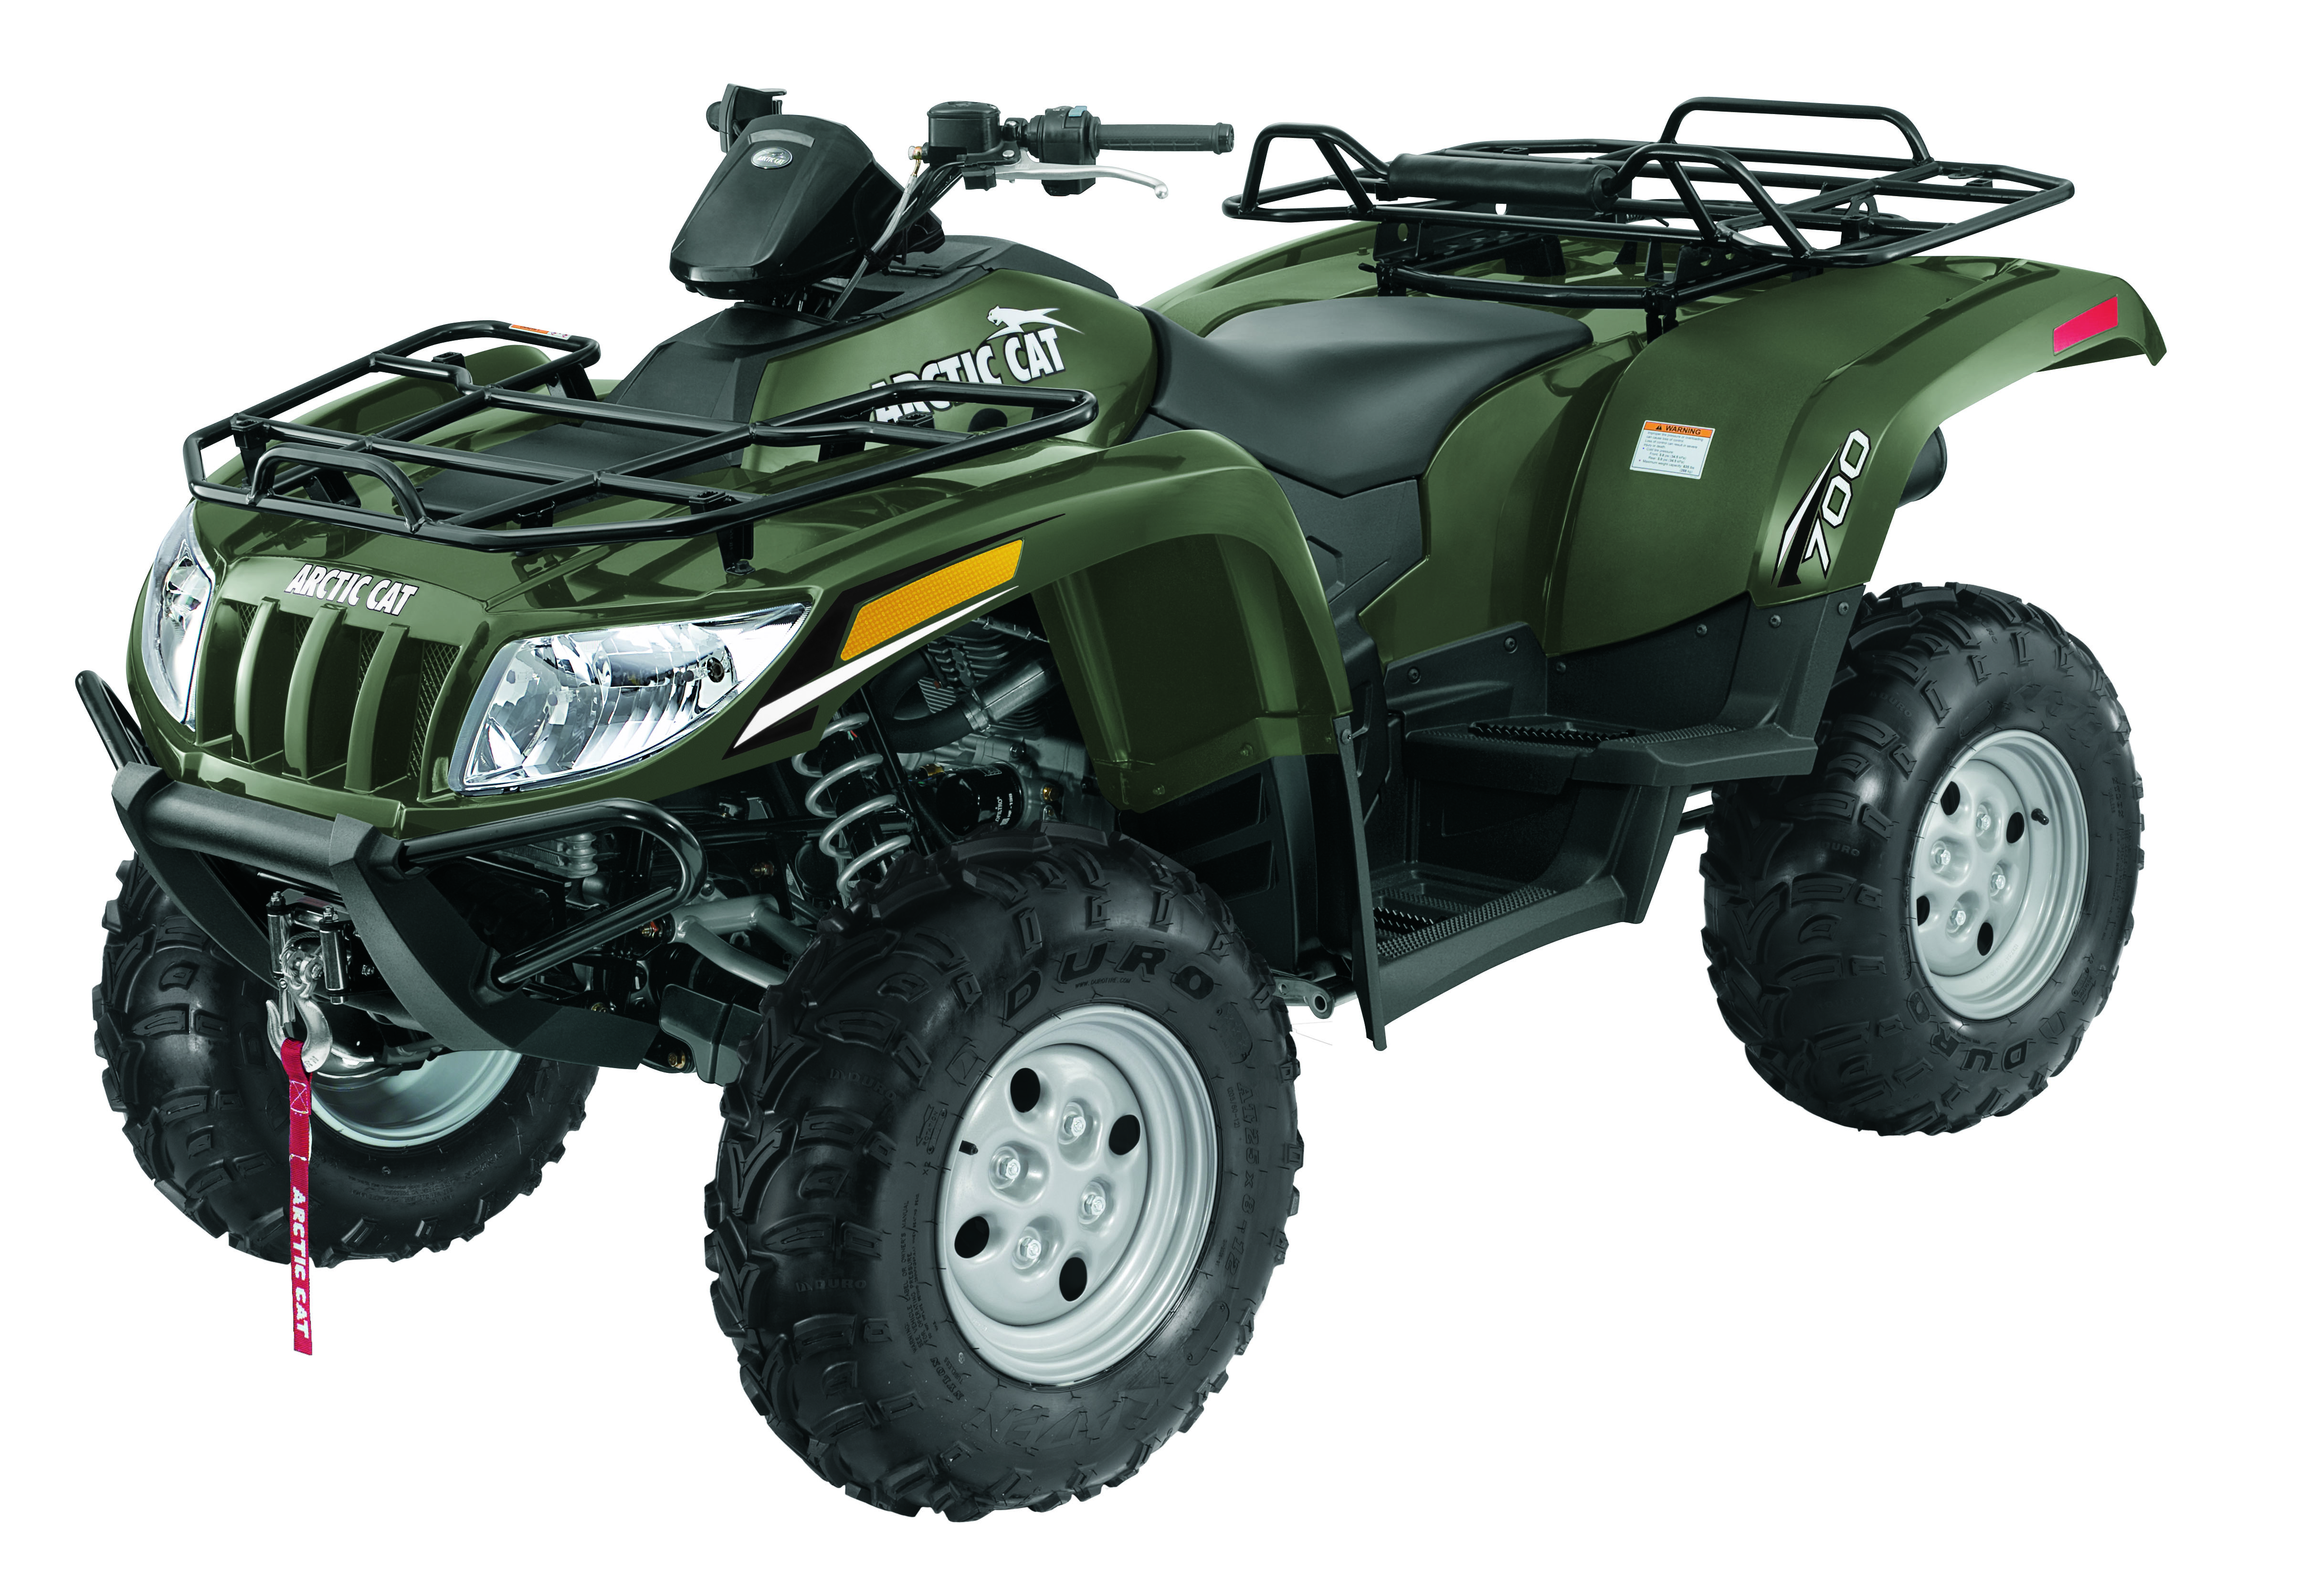 2013 Arctic Cat Lineup